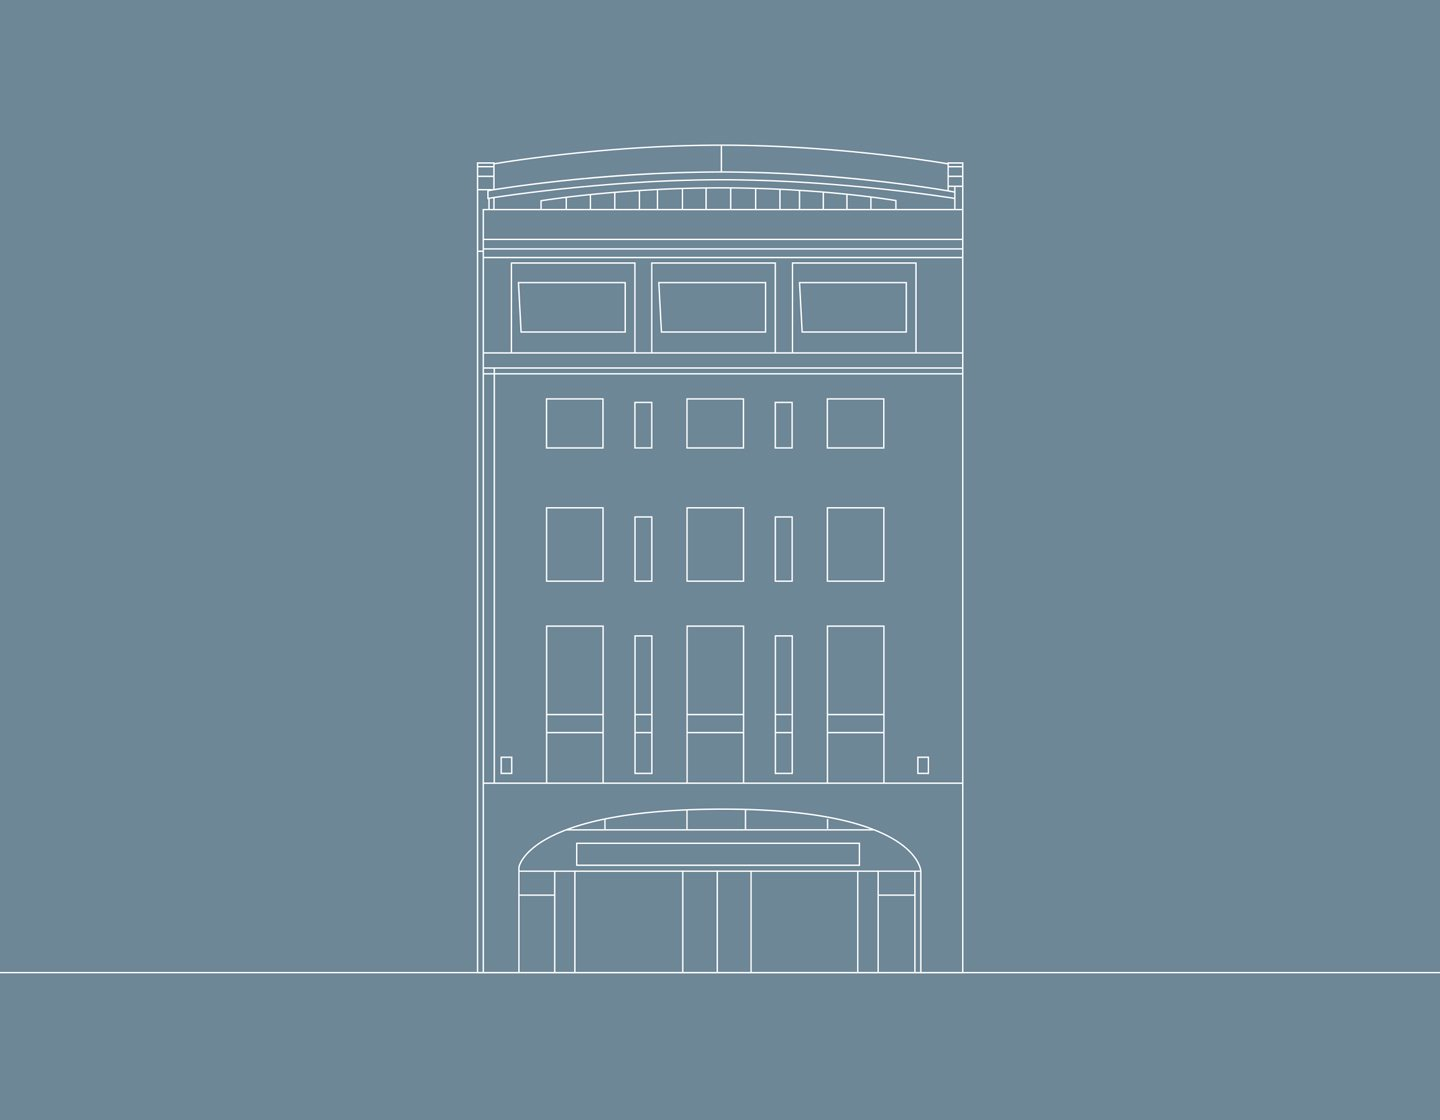 7 & 8 Conduit Street Illustration